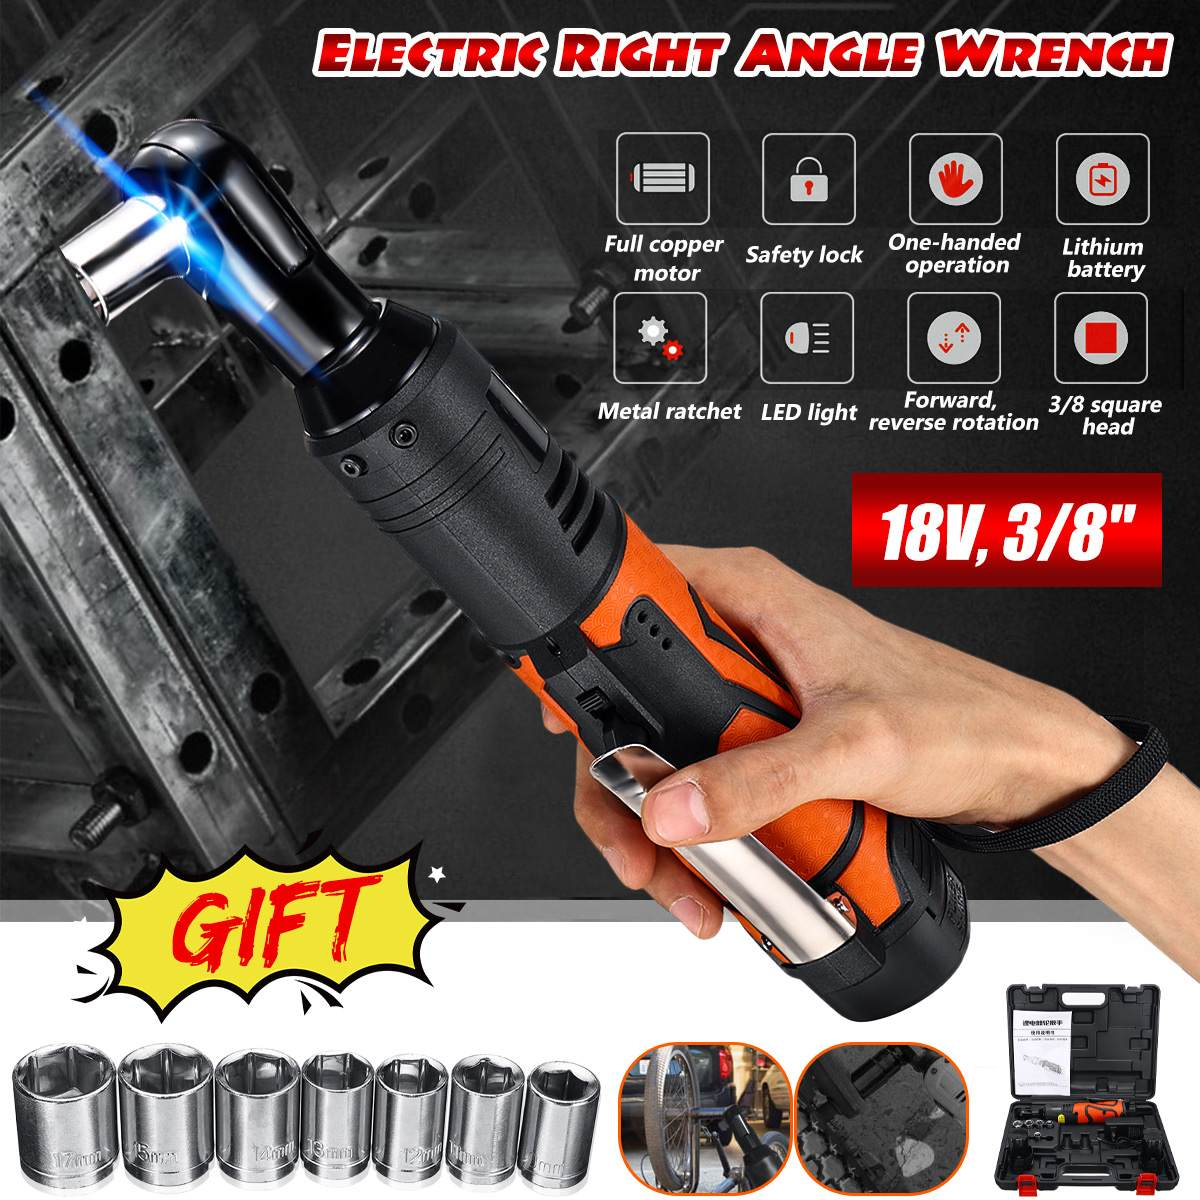 Portable 18V Cordless Electric Wrench 3/8 60N.m Rechargeable Ratchet 90 degree Right Angle Wrench Power tools SetPortable 18V Cordless Electric Wrench 3/8 60N.m Rechargeable Ratchet 90 degree Right Angle Wrench Power tools Set